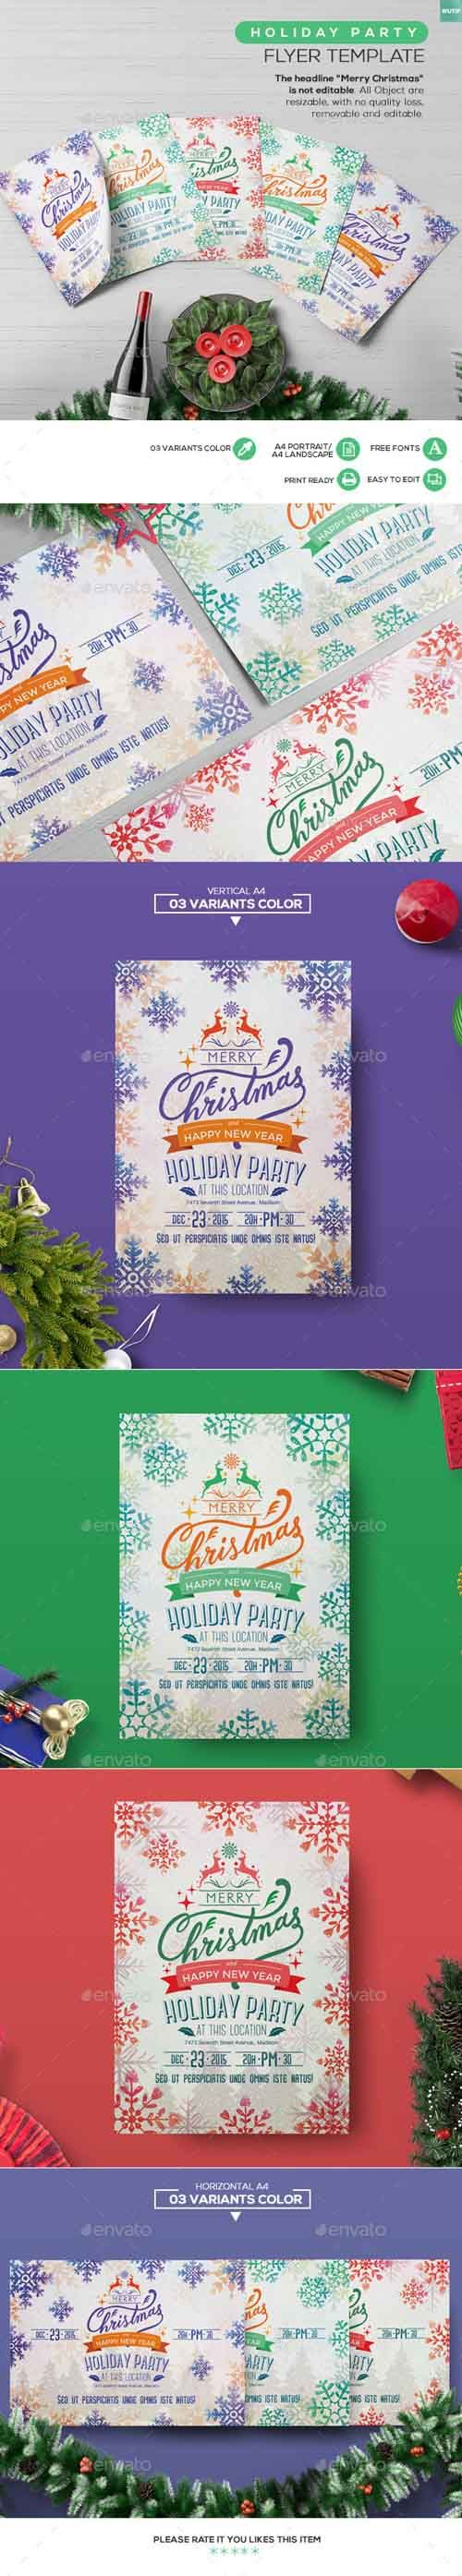 36 best Party Flyer Template images on Pinterest Flyer template